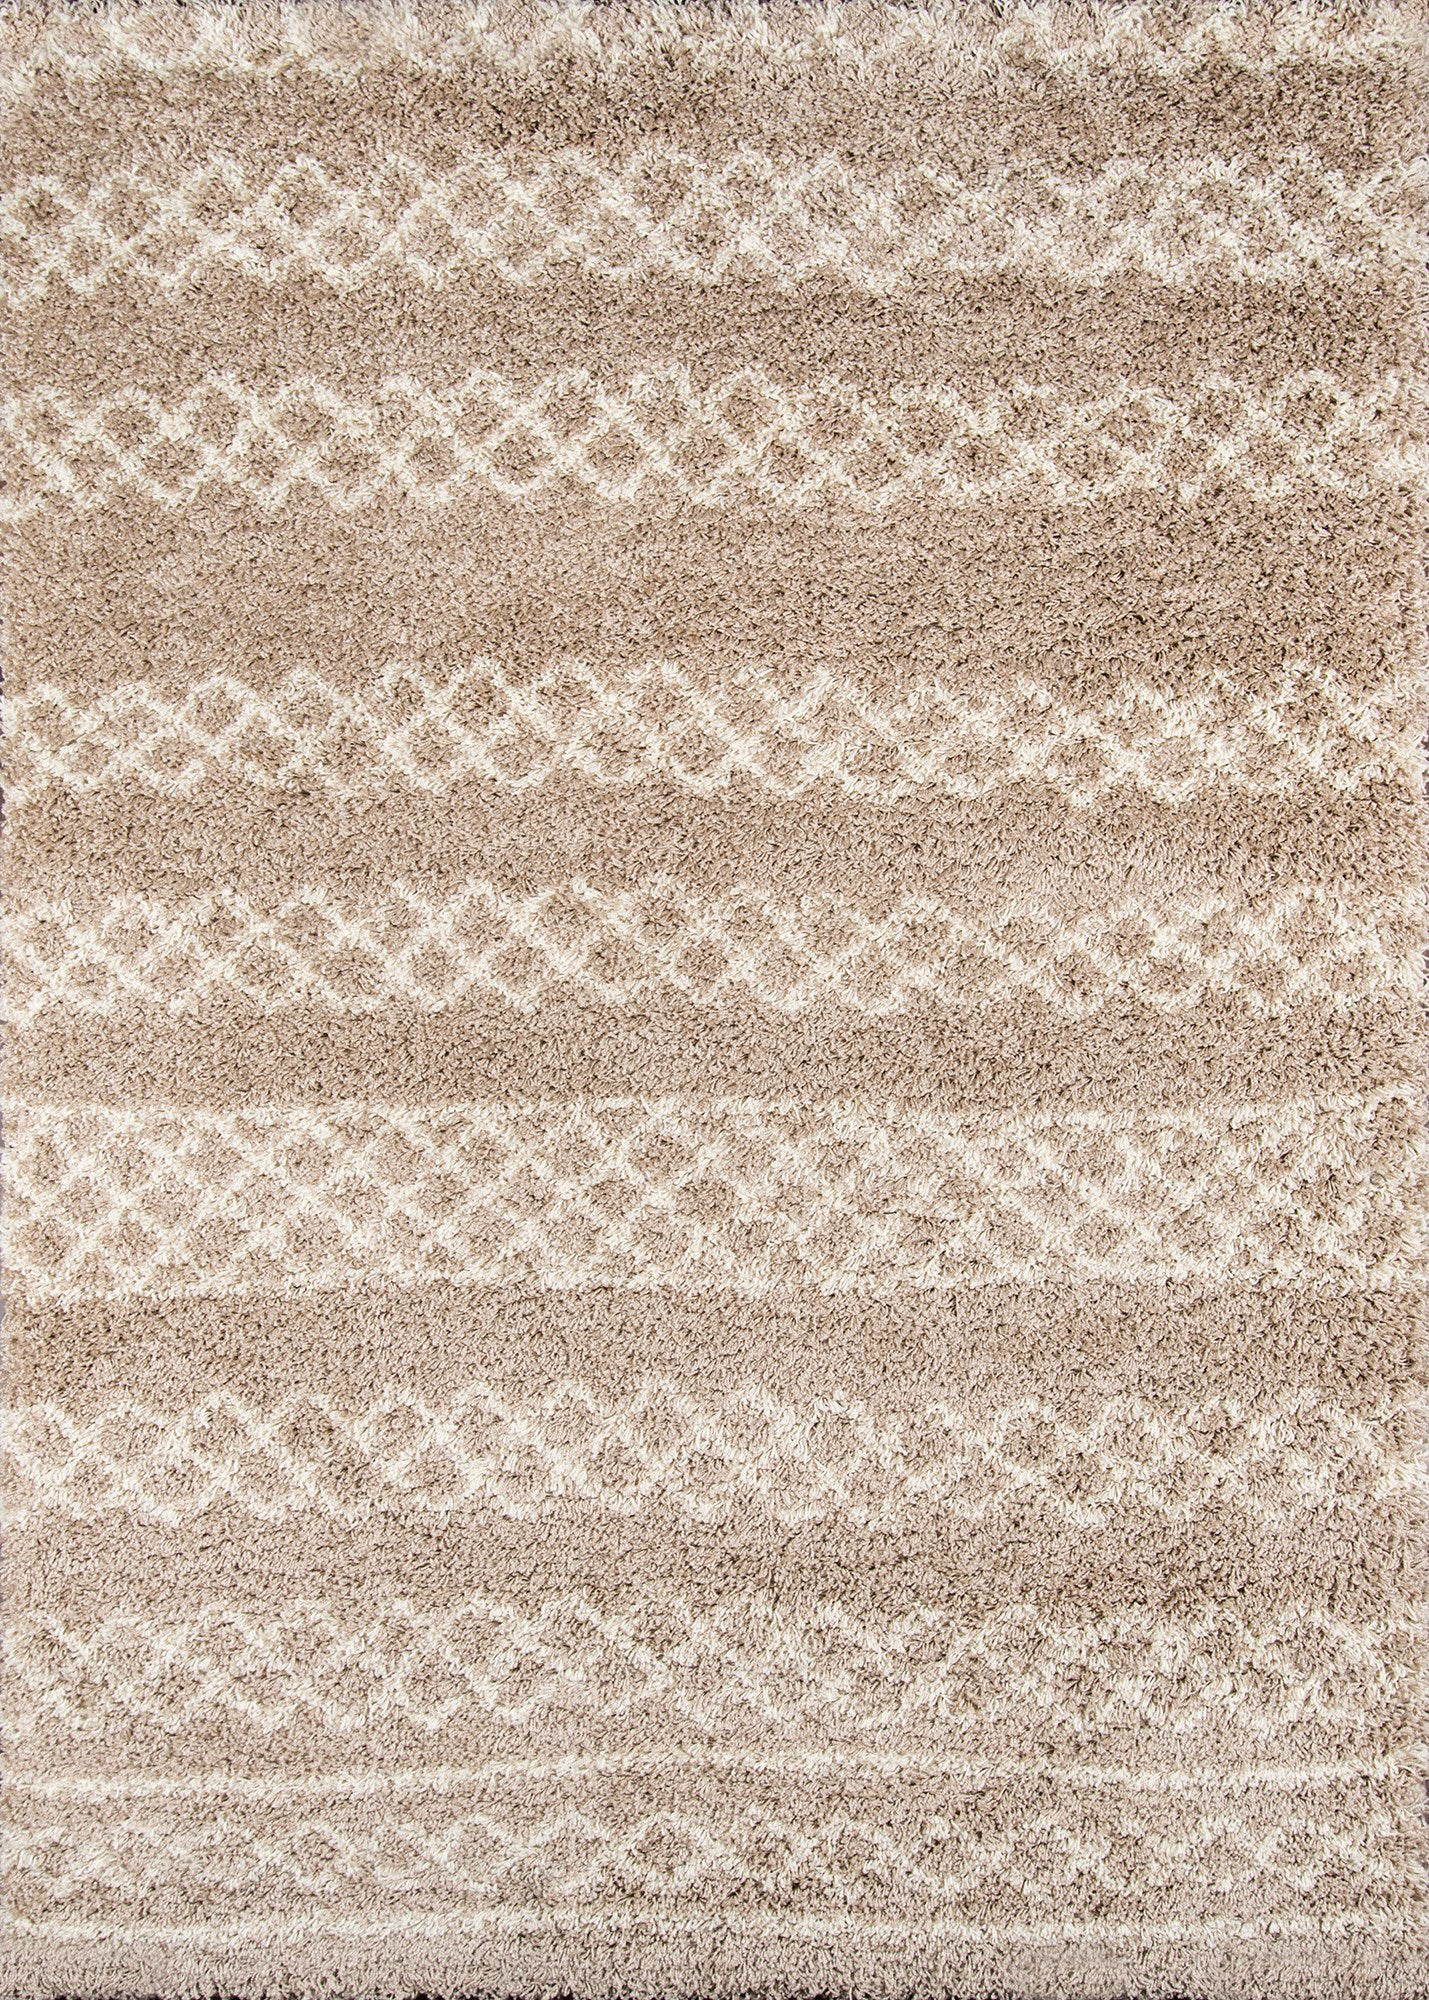 Momeni Maya MAY-3 Beige Area Rug main image